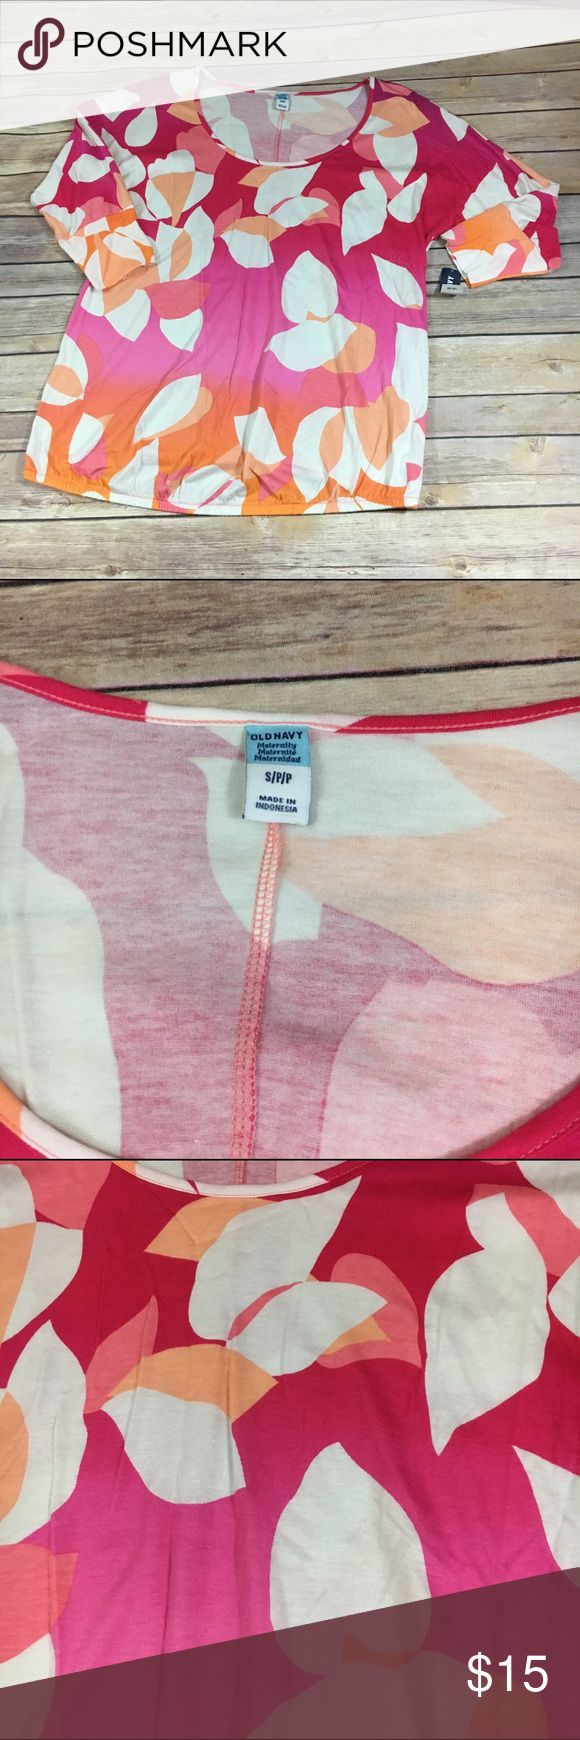 Old Navy Pink Ombre Maternity Top NEW NWT S Old Navy Pink Ombre Maternity Top NEW NWT S  Floral orange and multi pink raglan style top with elastic at waist.  New with tags.  #ombre #floral #pink #orange #raglan #new #Nwt #top #maternity #momtobe Old Navy Tops